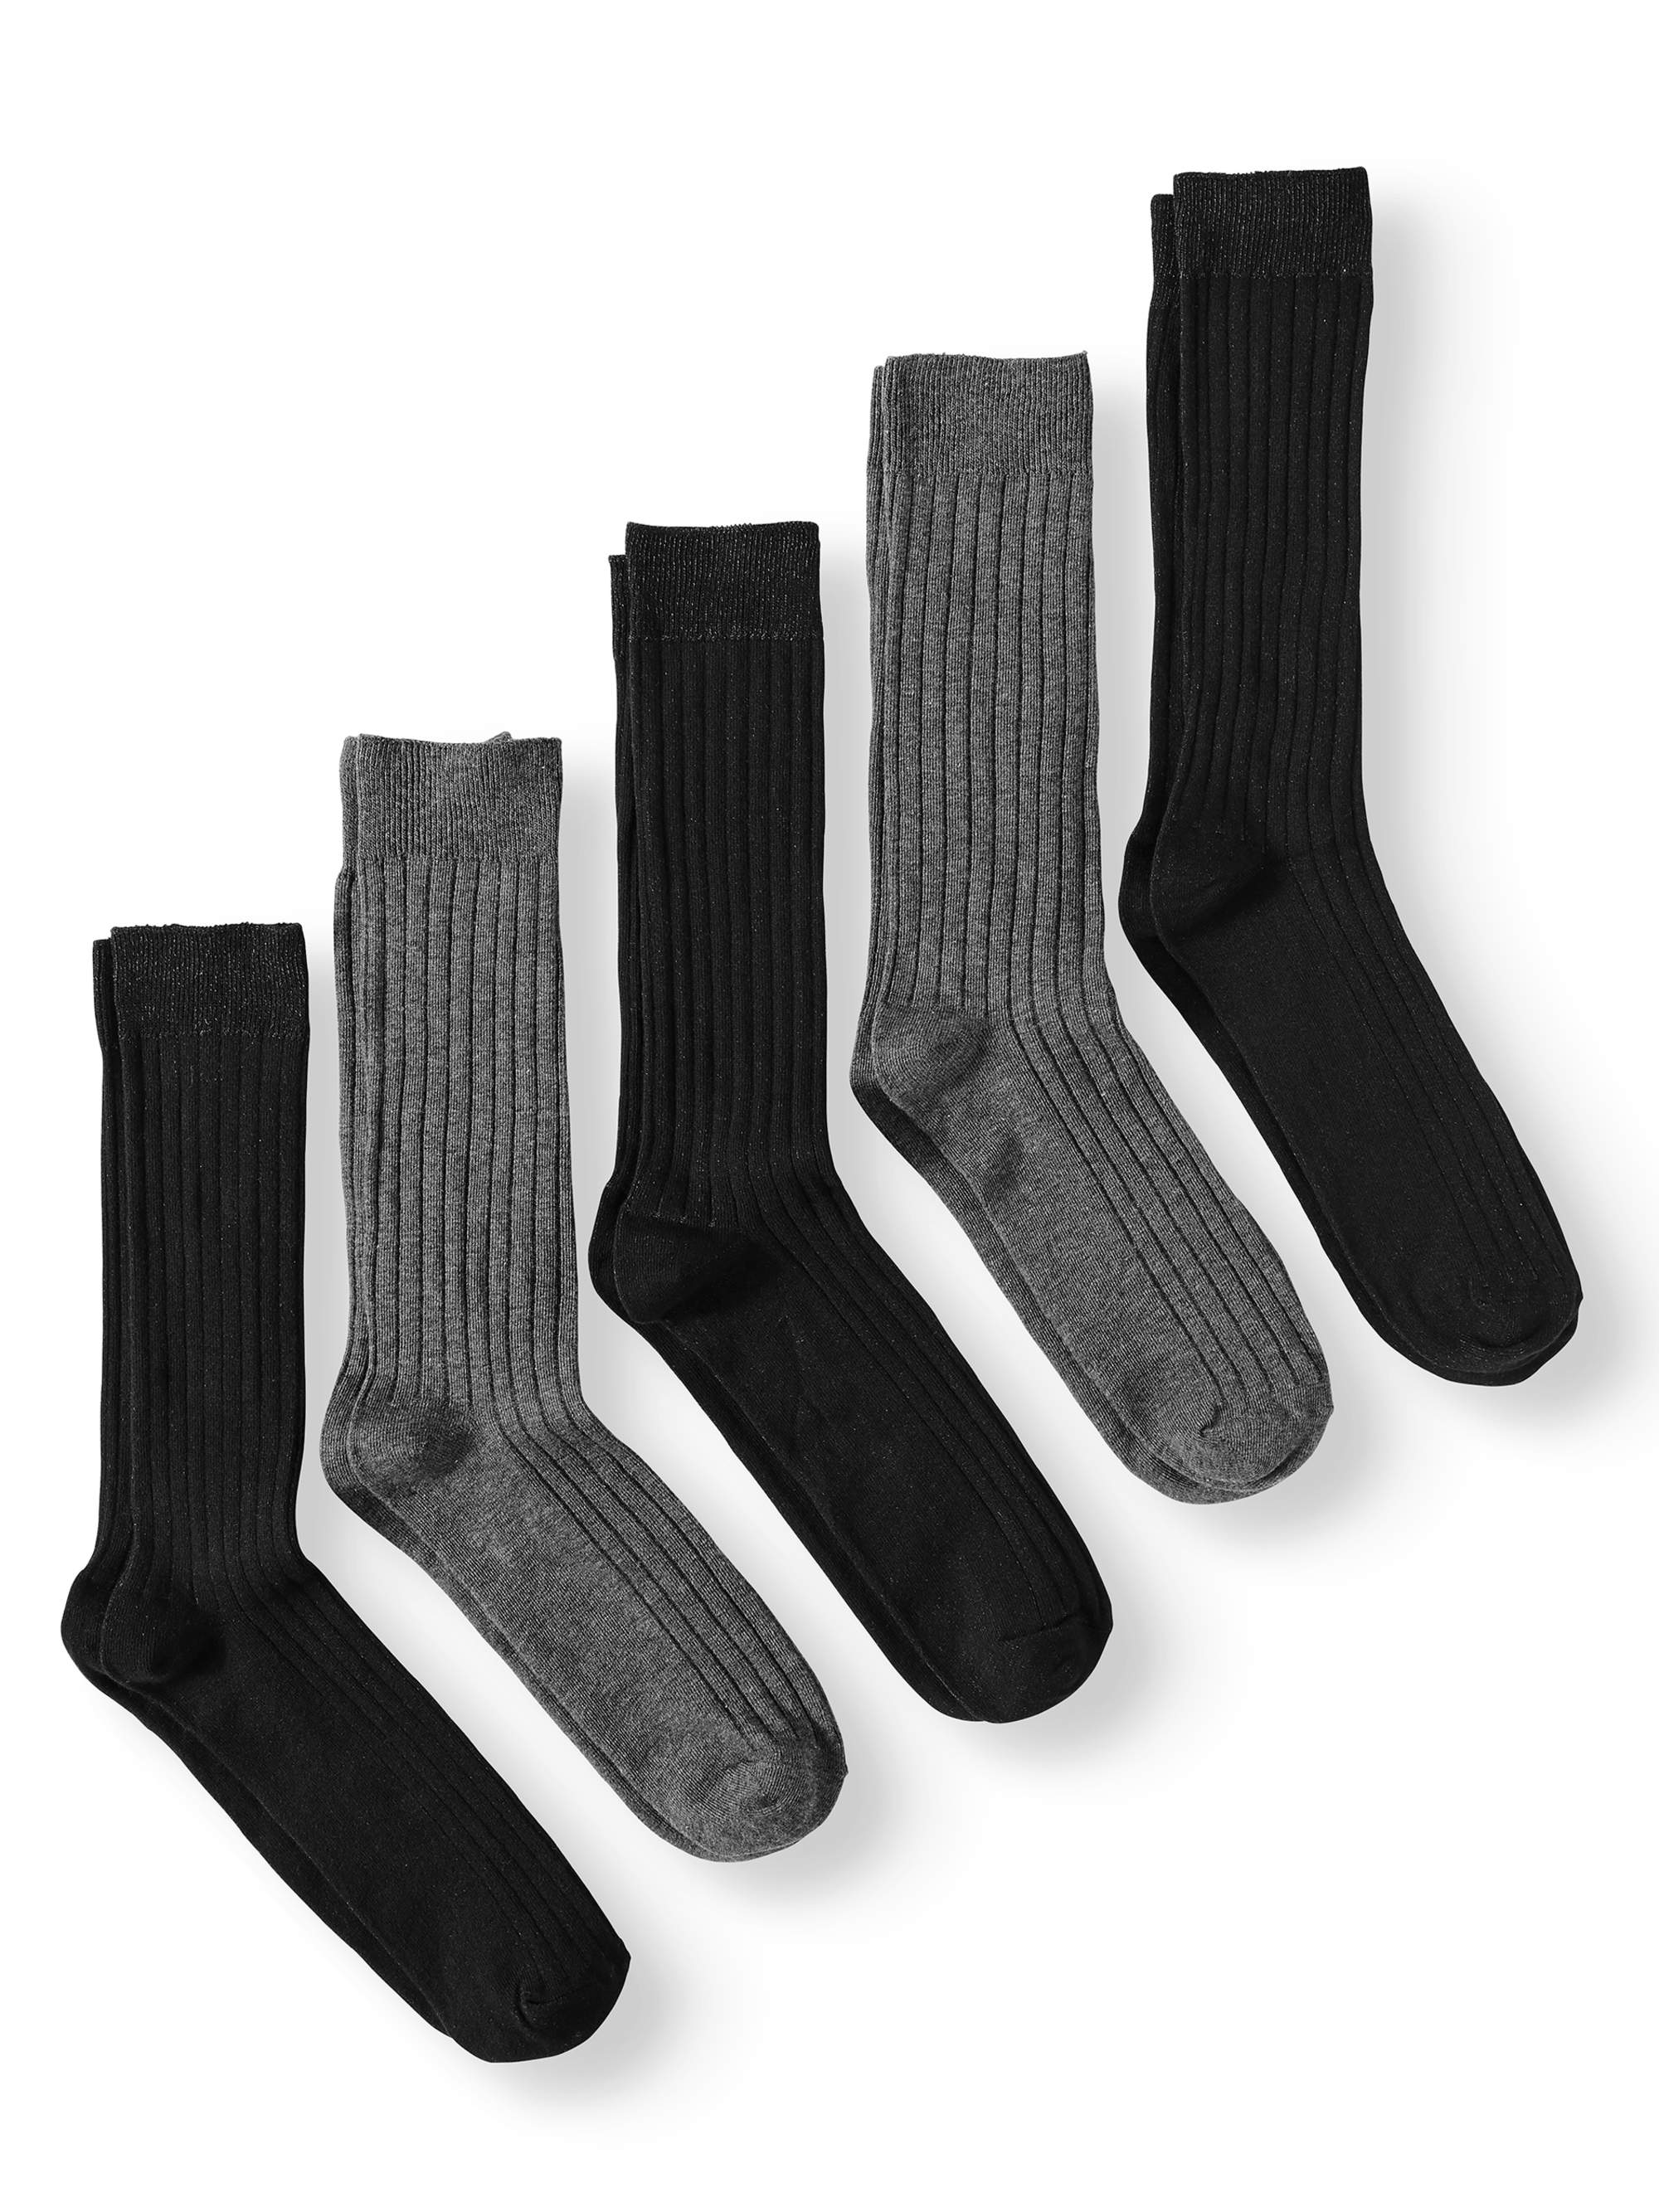 George Big & Tall Cotton Rib Crew Socks, 5-Pack